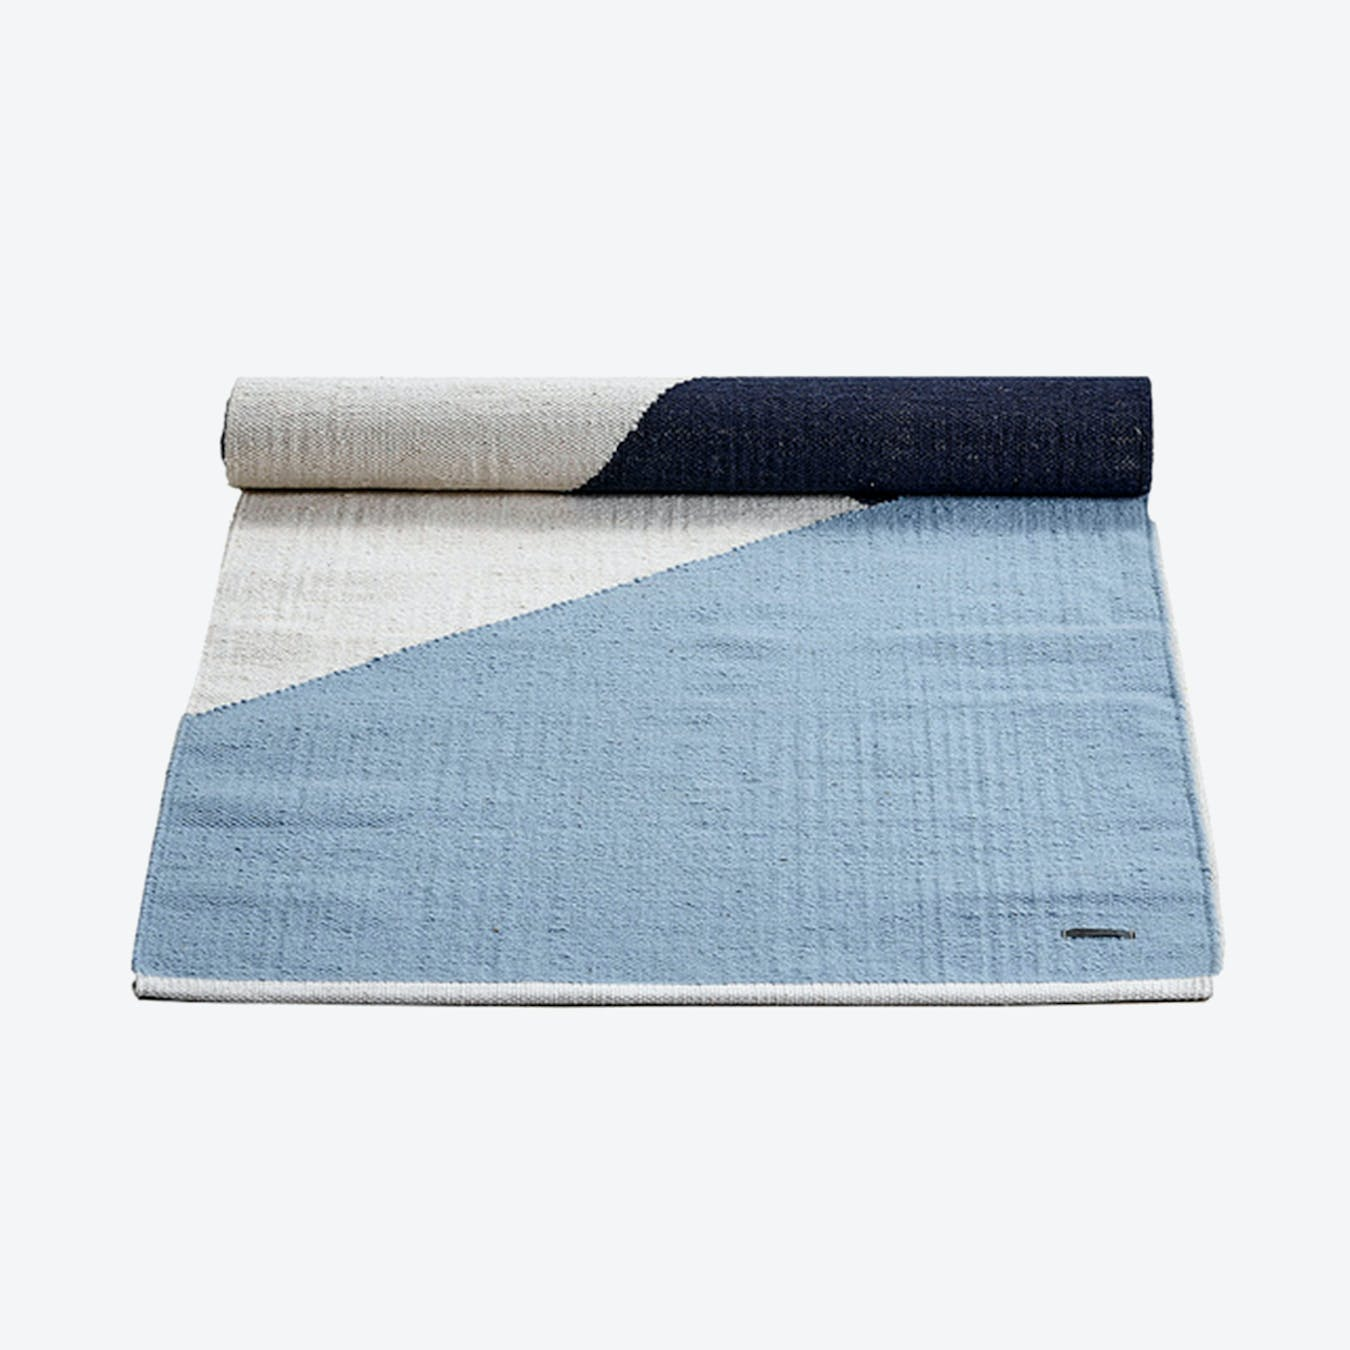 Horizon Wool Rug in Blue and White